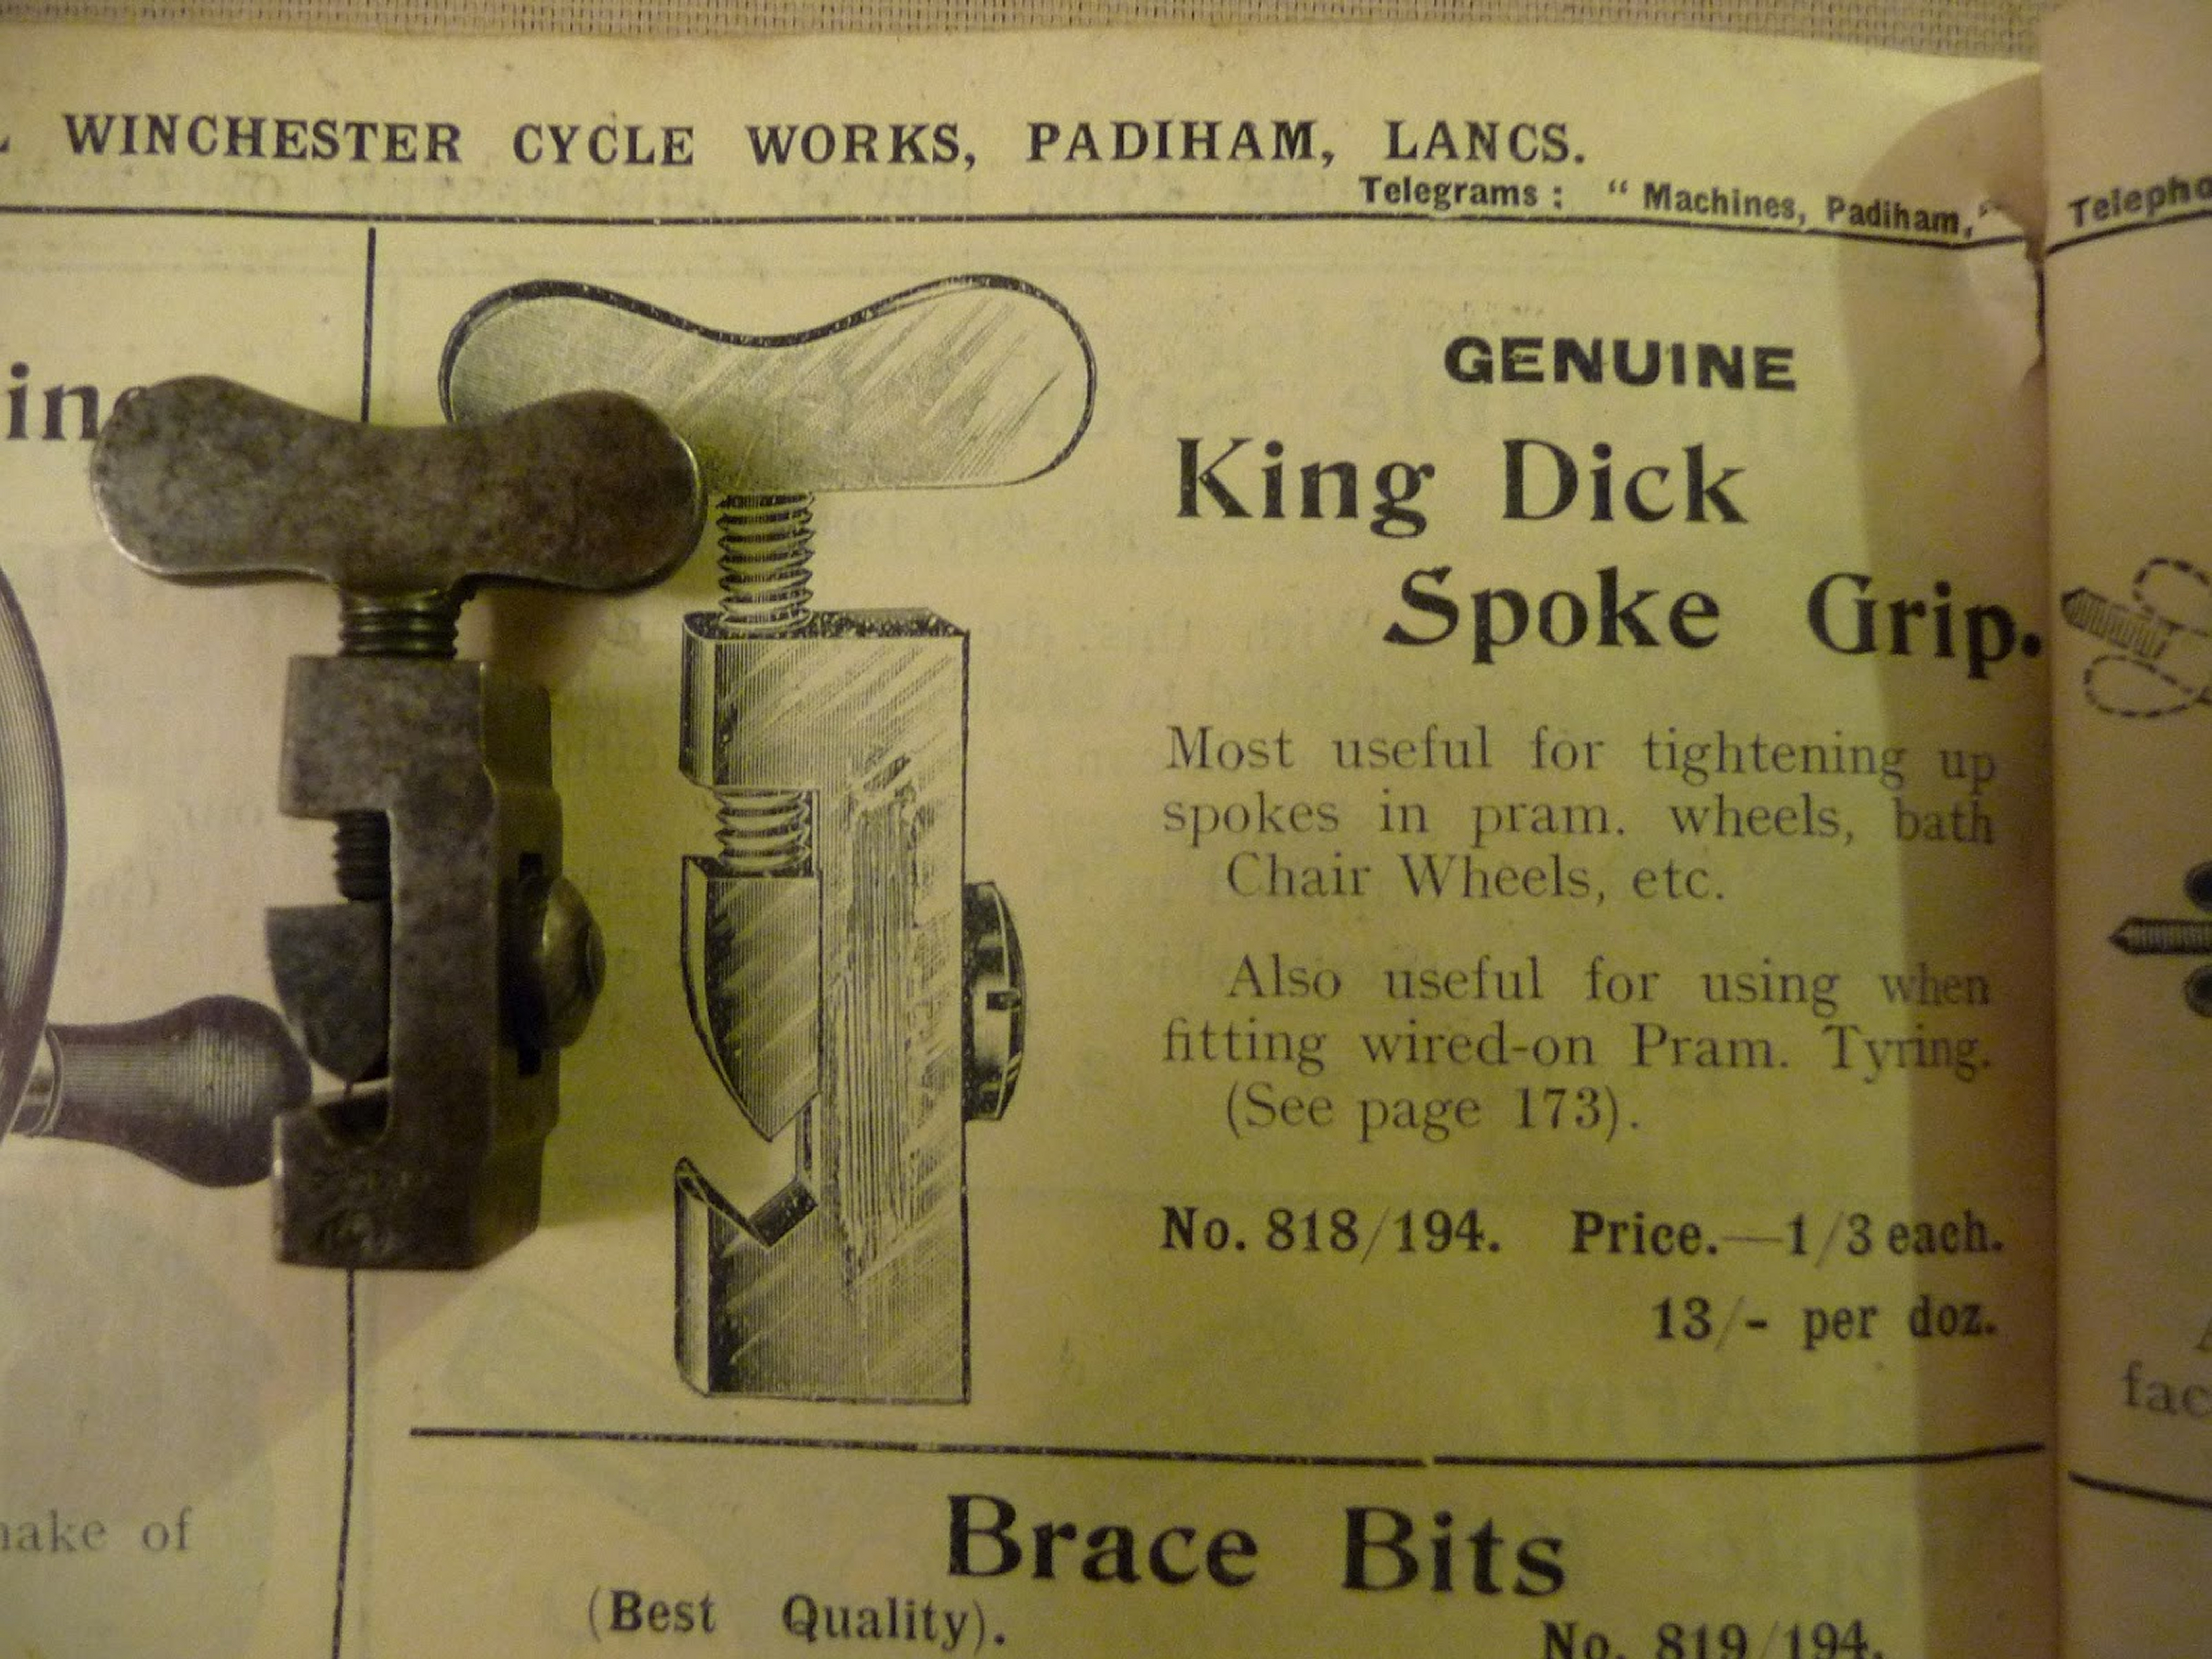 King Dick spoke grip 1912.jpg